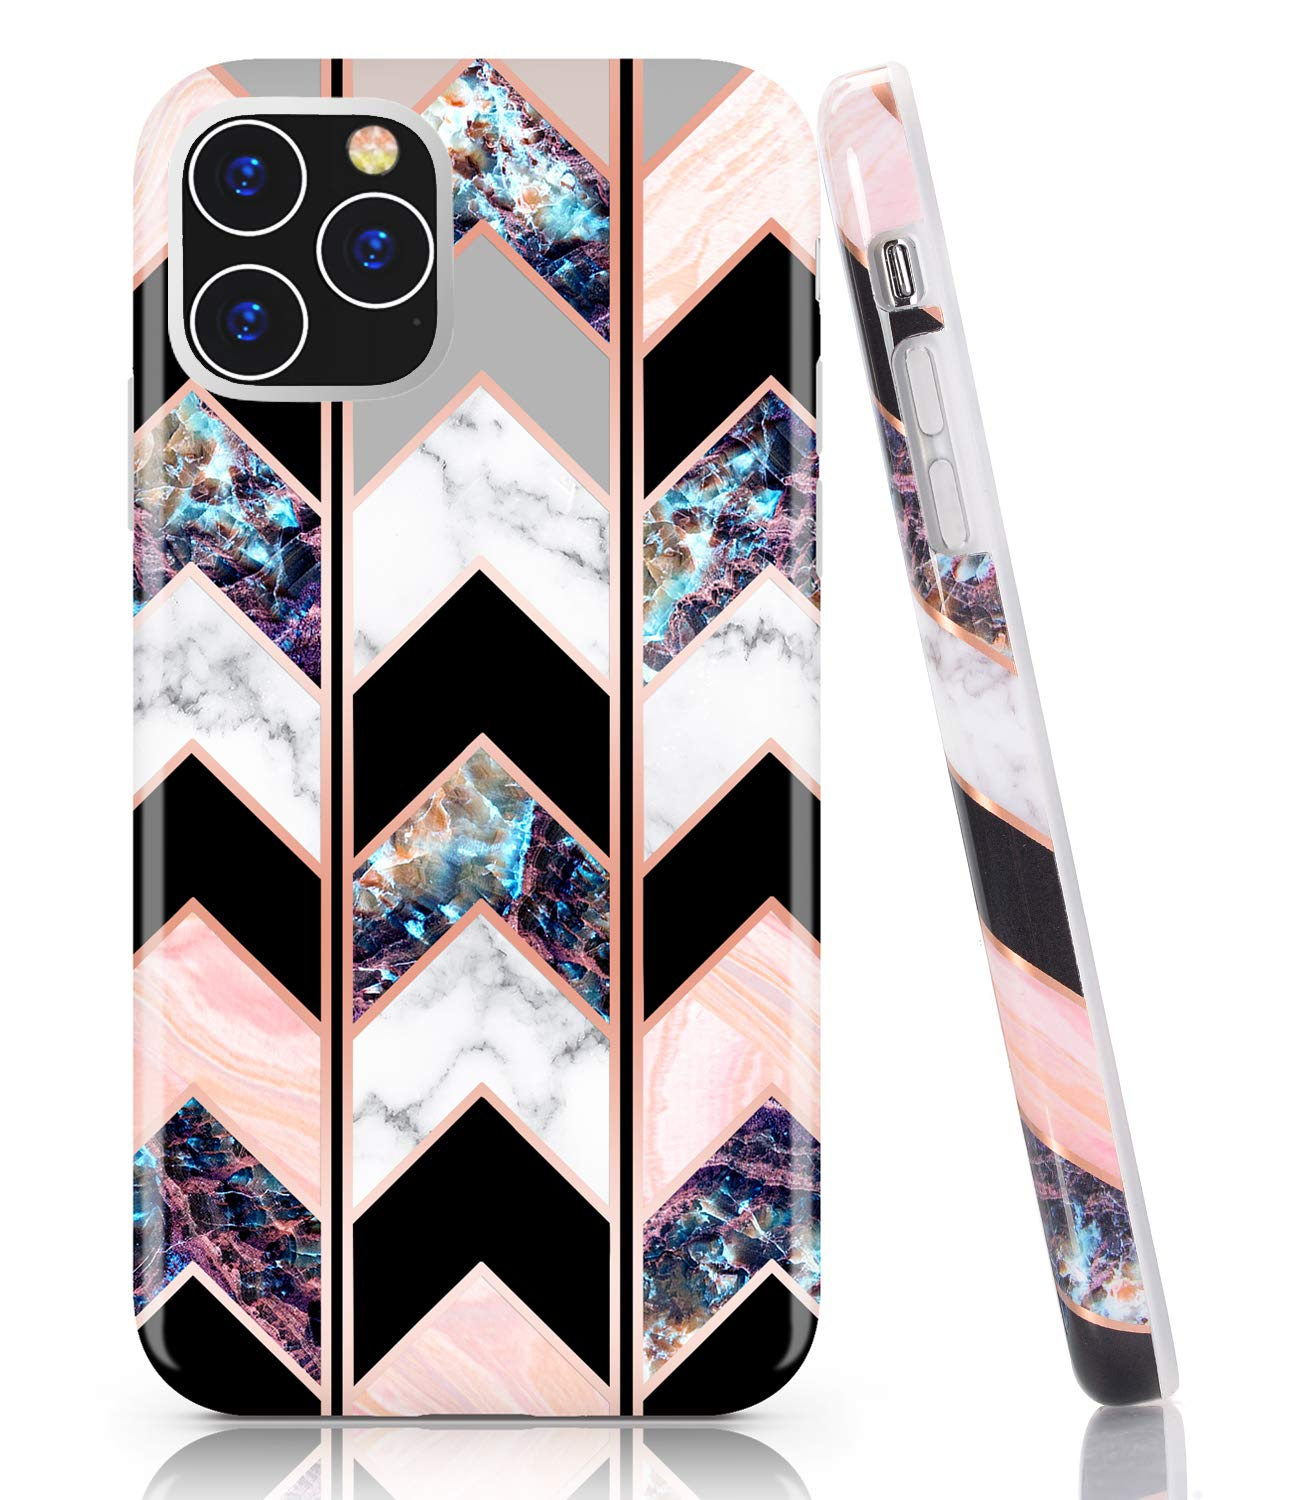 BAISRKE iPhone 11 Pro Case, Shiny Rose Gold Wave Geometric Marble Case Slim Soft TPU Rubber Bumper Silicone Protective Phone Case Cover for iPhone 11 Pro 5.8 inch (2019) [Black]